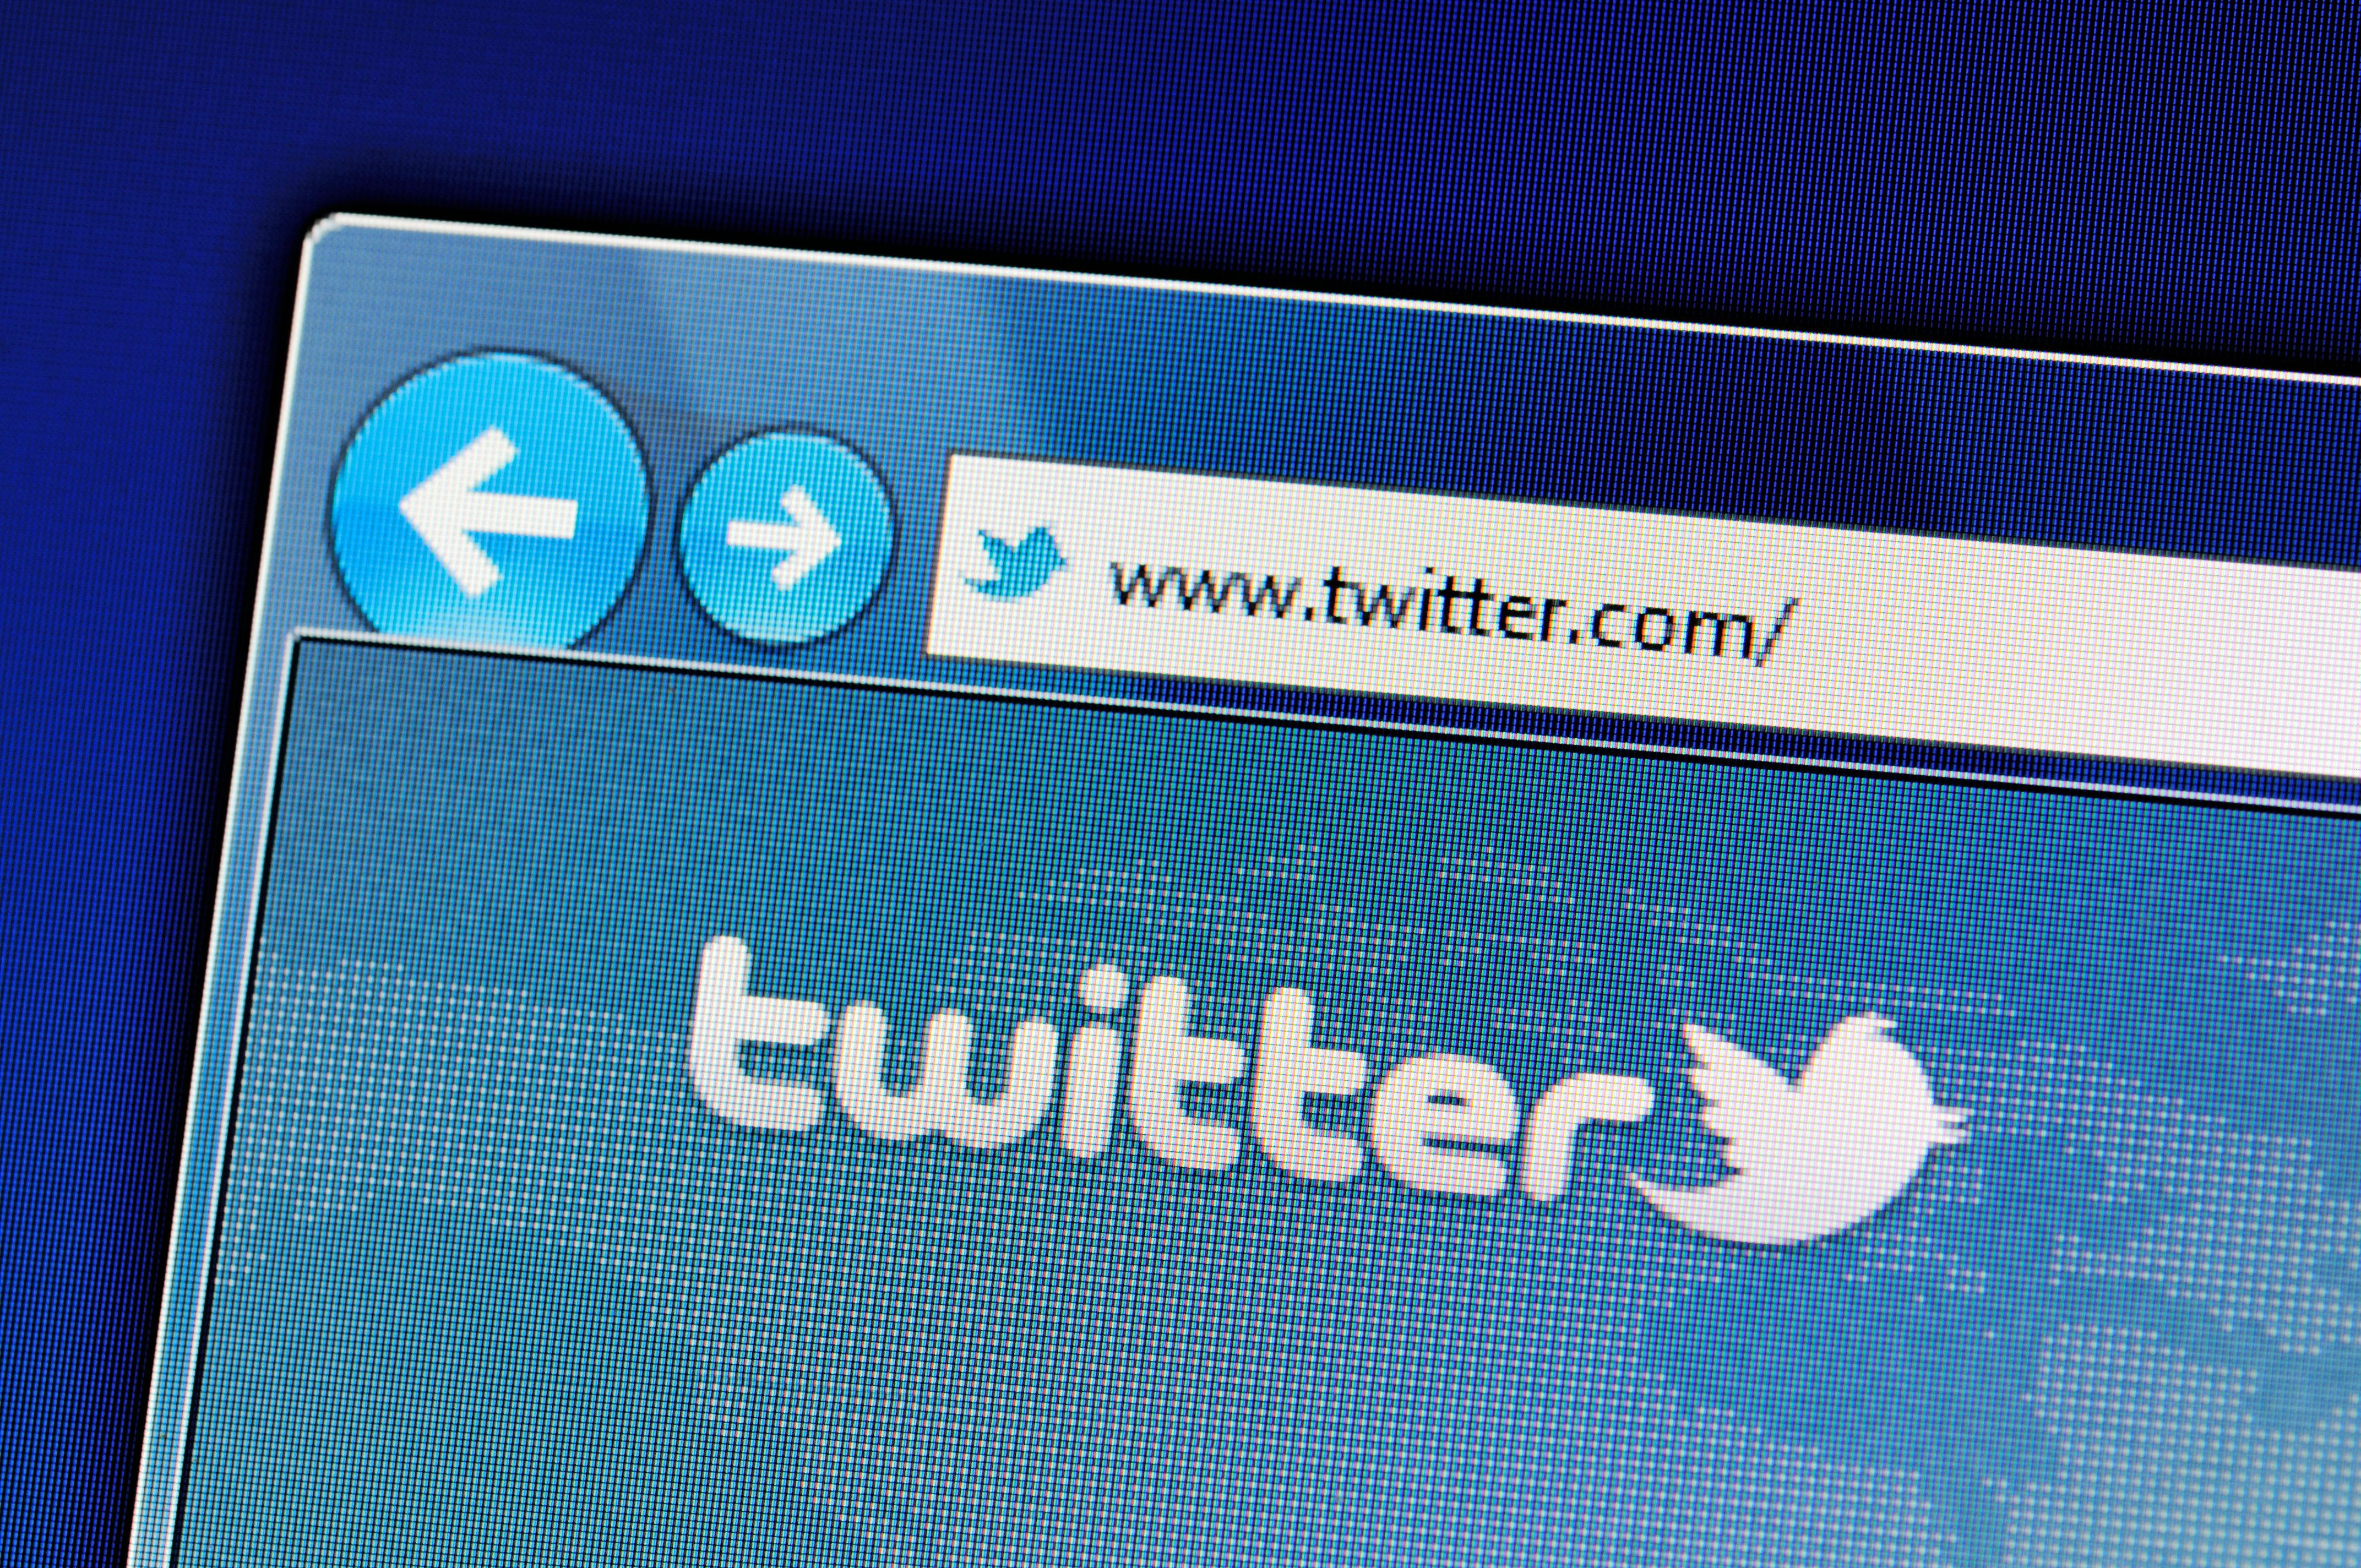 Here's Why Twitter Is Blocking 'Bisexual' From Its Search